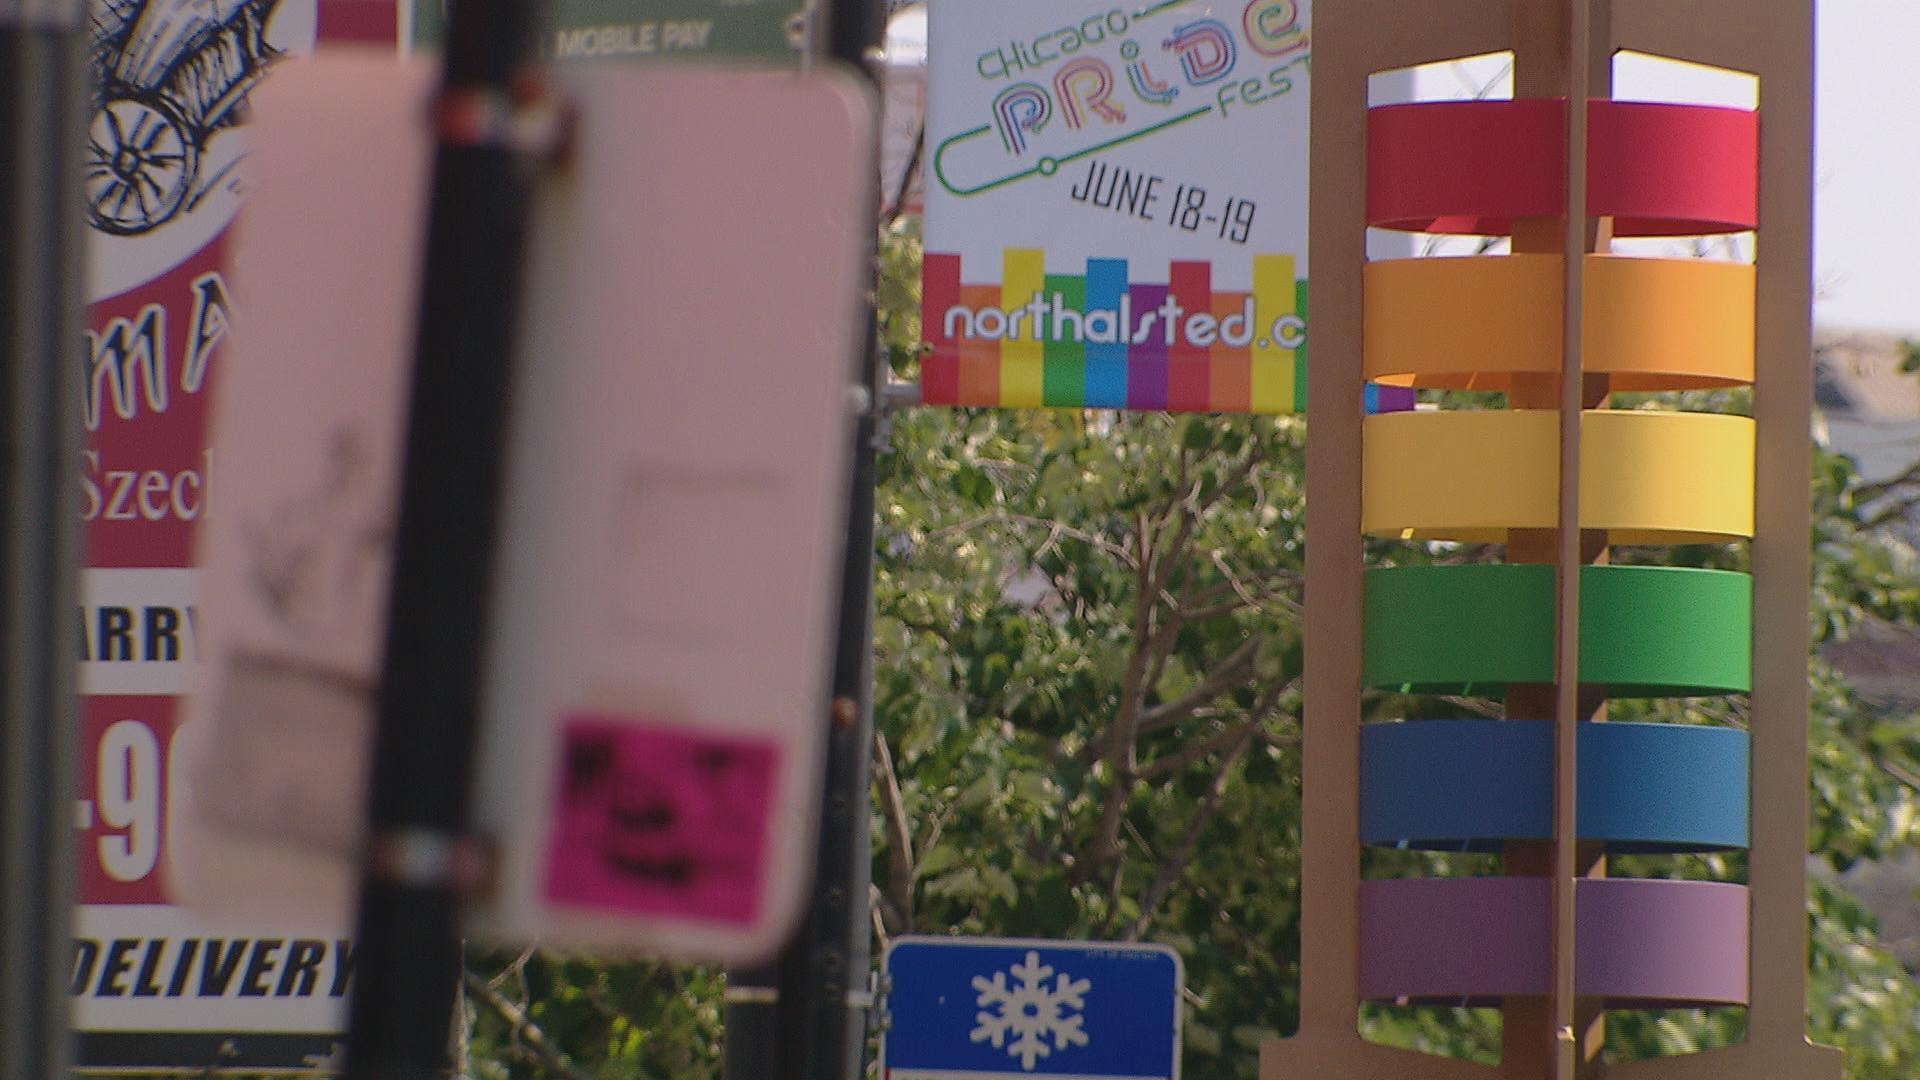 A sign promoting Chicago's annual Pride Fest is seen in Boystown a day after the Orlando mass shooting at a gay club. Mayor Rahm Emanuel said Monday that Chicago's celebration of pride will go on as planned.